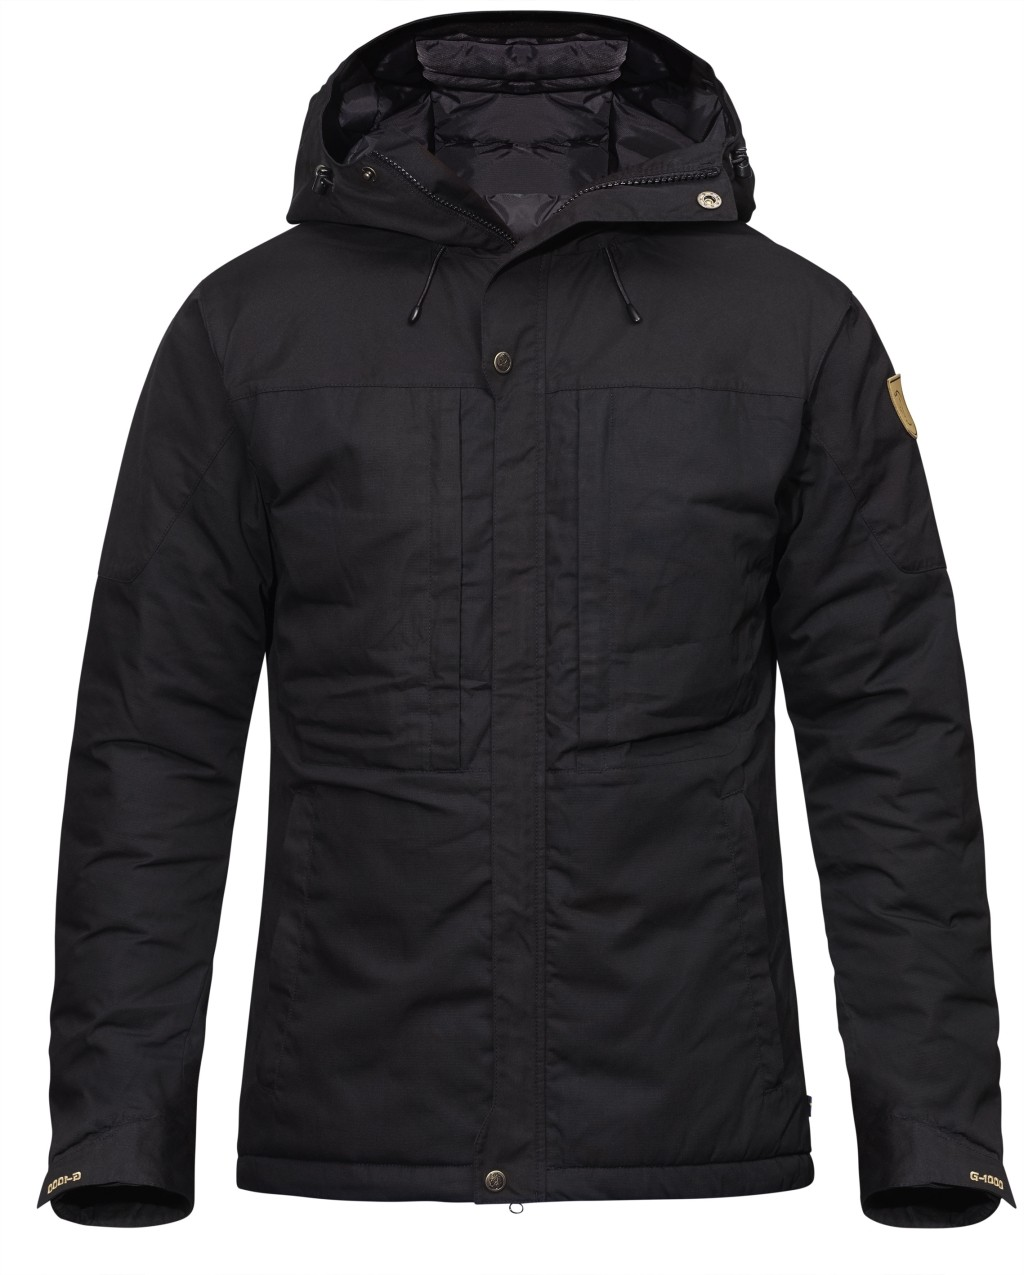 FjallRaven Skogso Padded Jacket